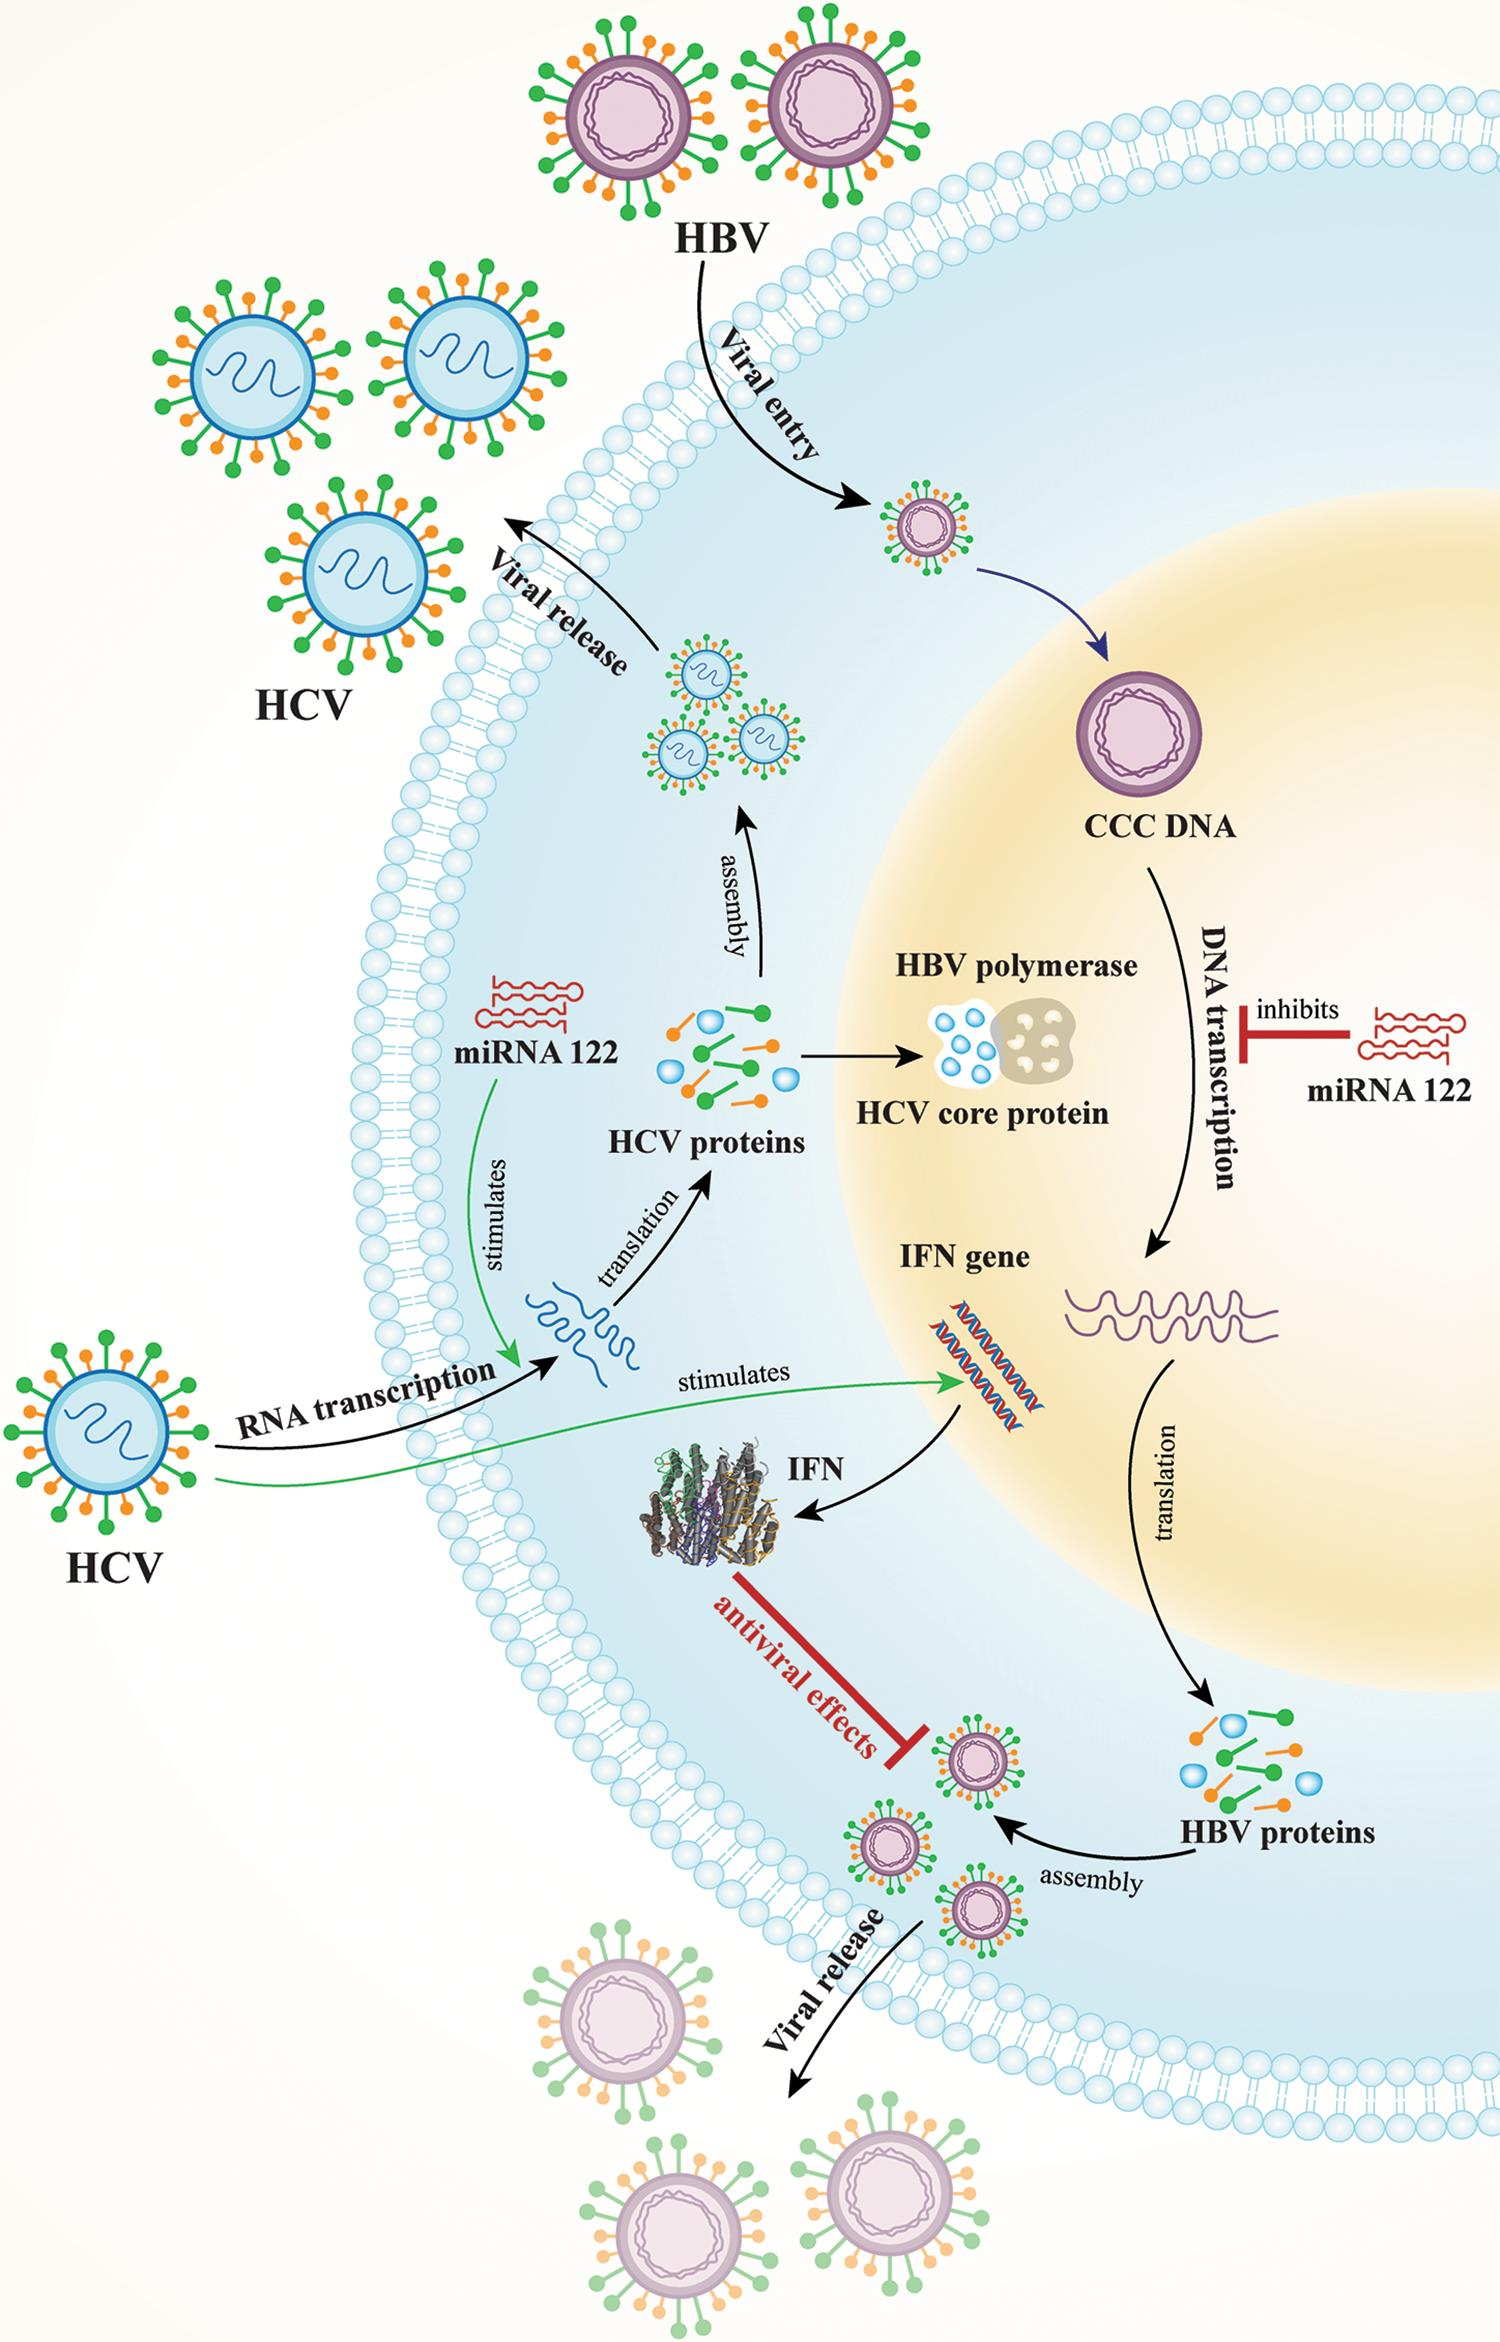 A depiction of three proposed mechanisms of HCV suppression of HBV replication.